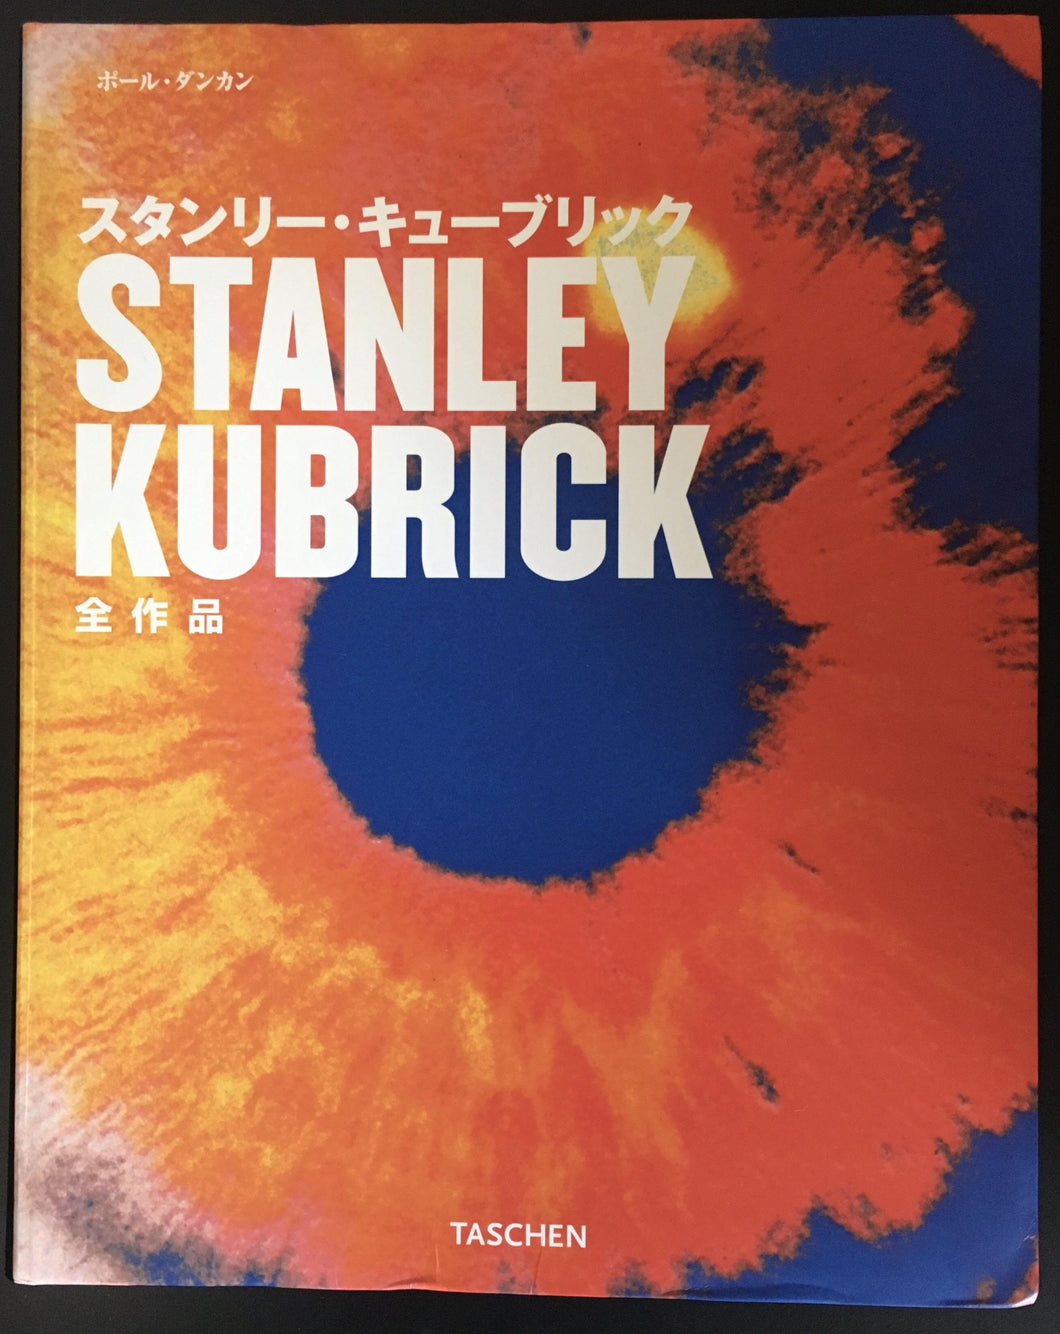 Stanley Kubrick The Complete Films by Paul Duncan (Japanese Edition)